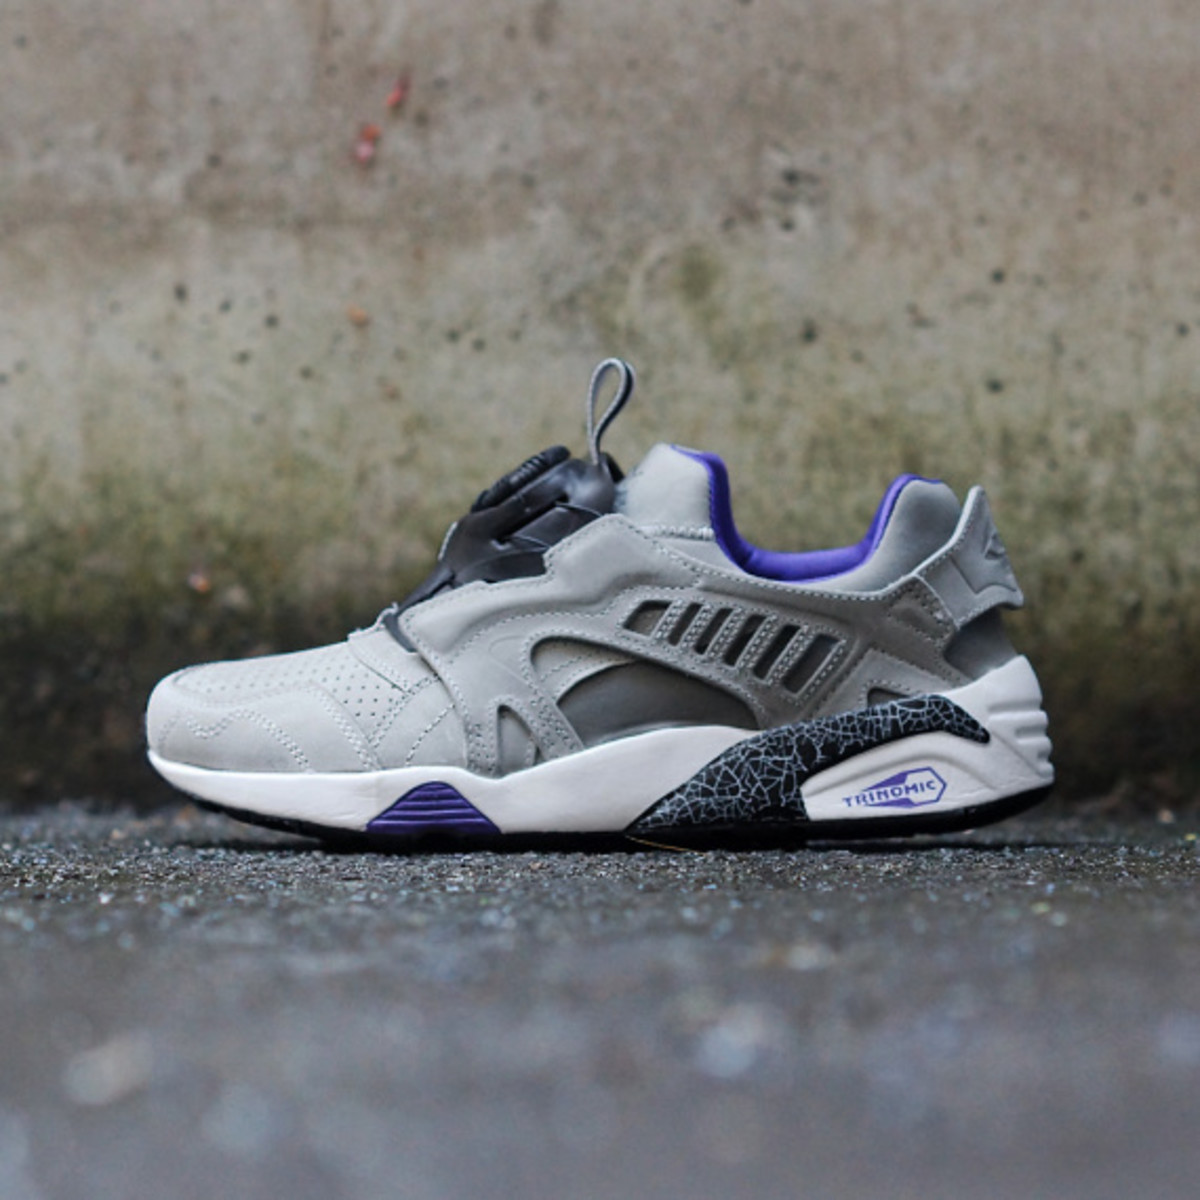 puma-disc-blaze-crackle-pack-03